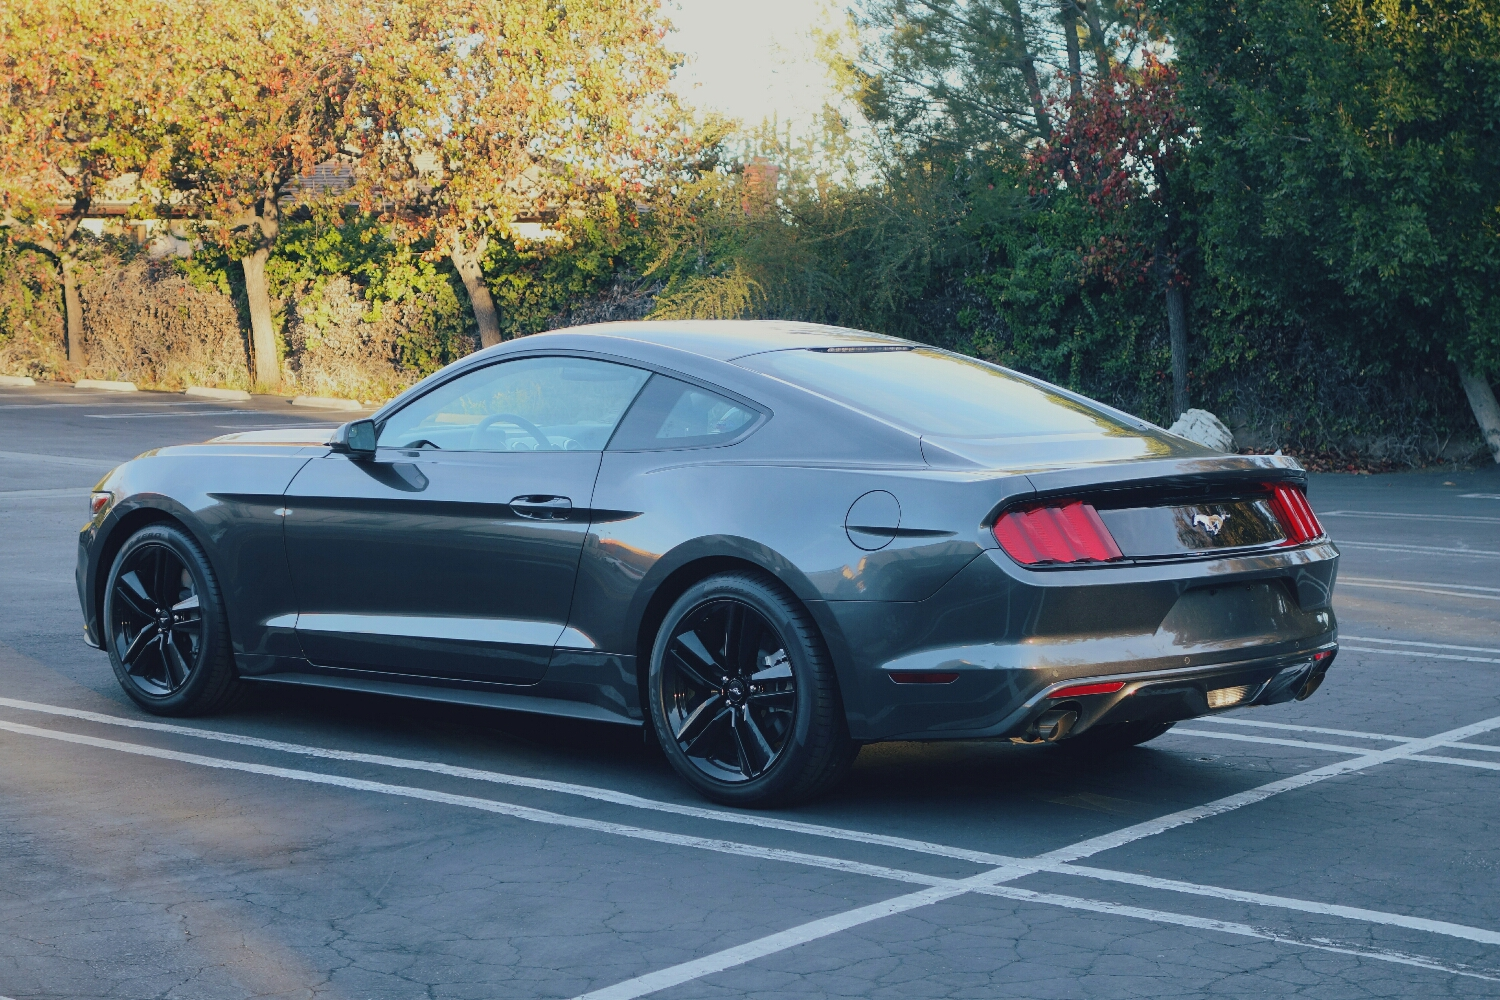 2015 Ford Mustang - Magnetic with Performance Pack